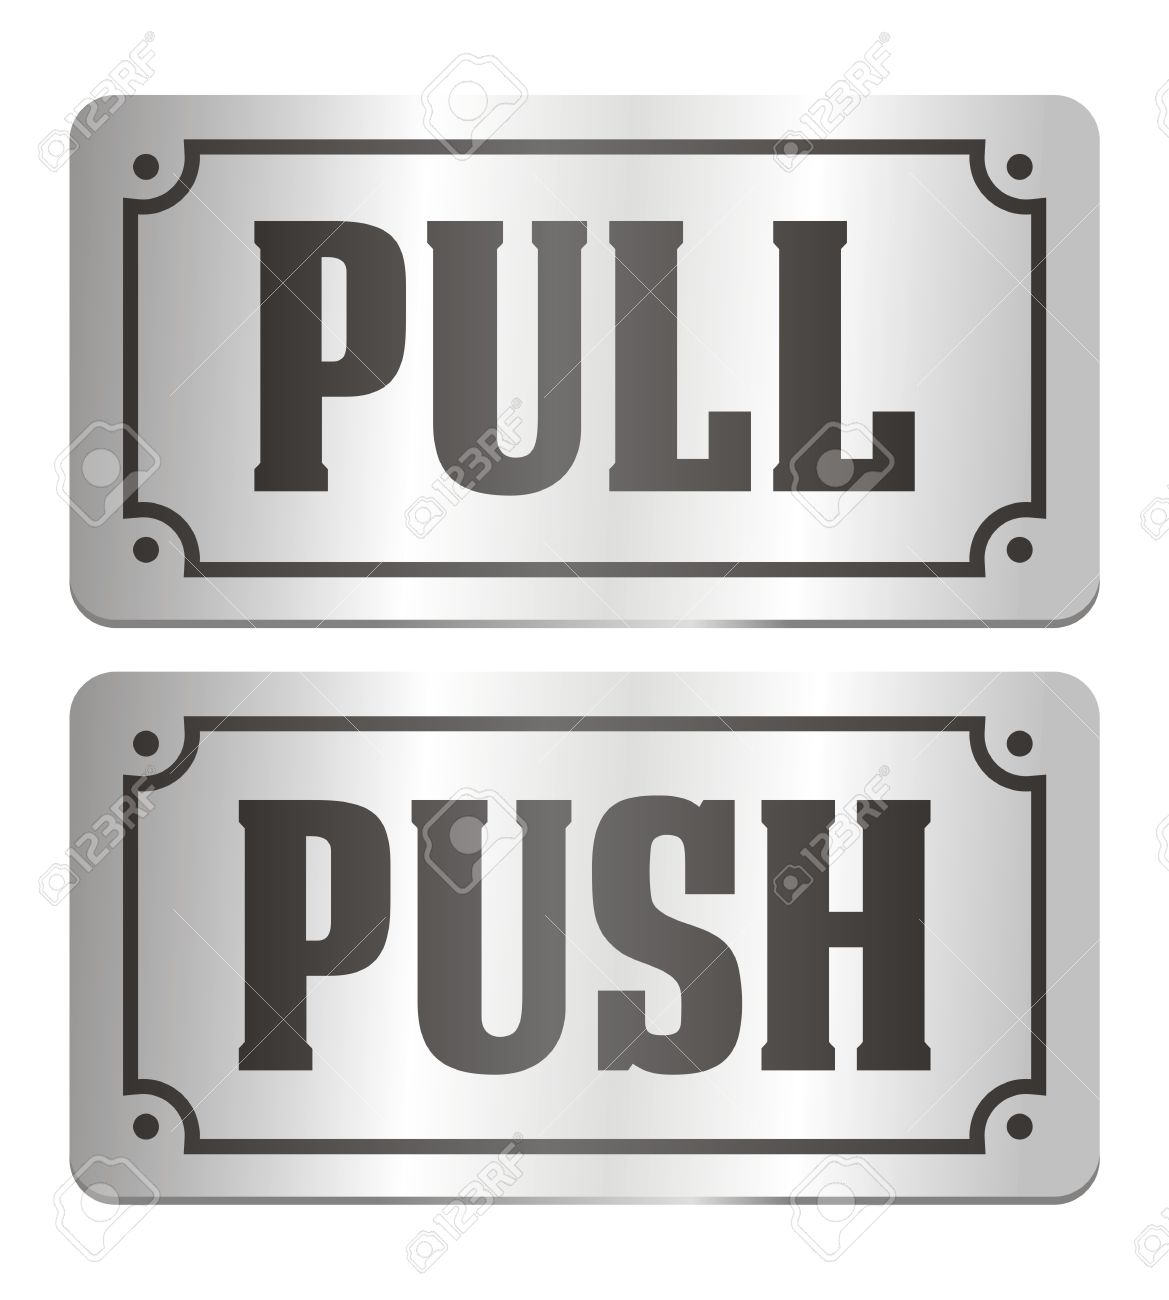 pull and push - door signs Stock Vector - 20237432  sc 1 st  123RF.com & Pull And Push - Door Signs Royalty Free Cliparts Vectors And Stock ...